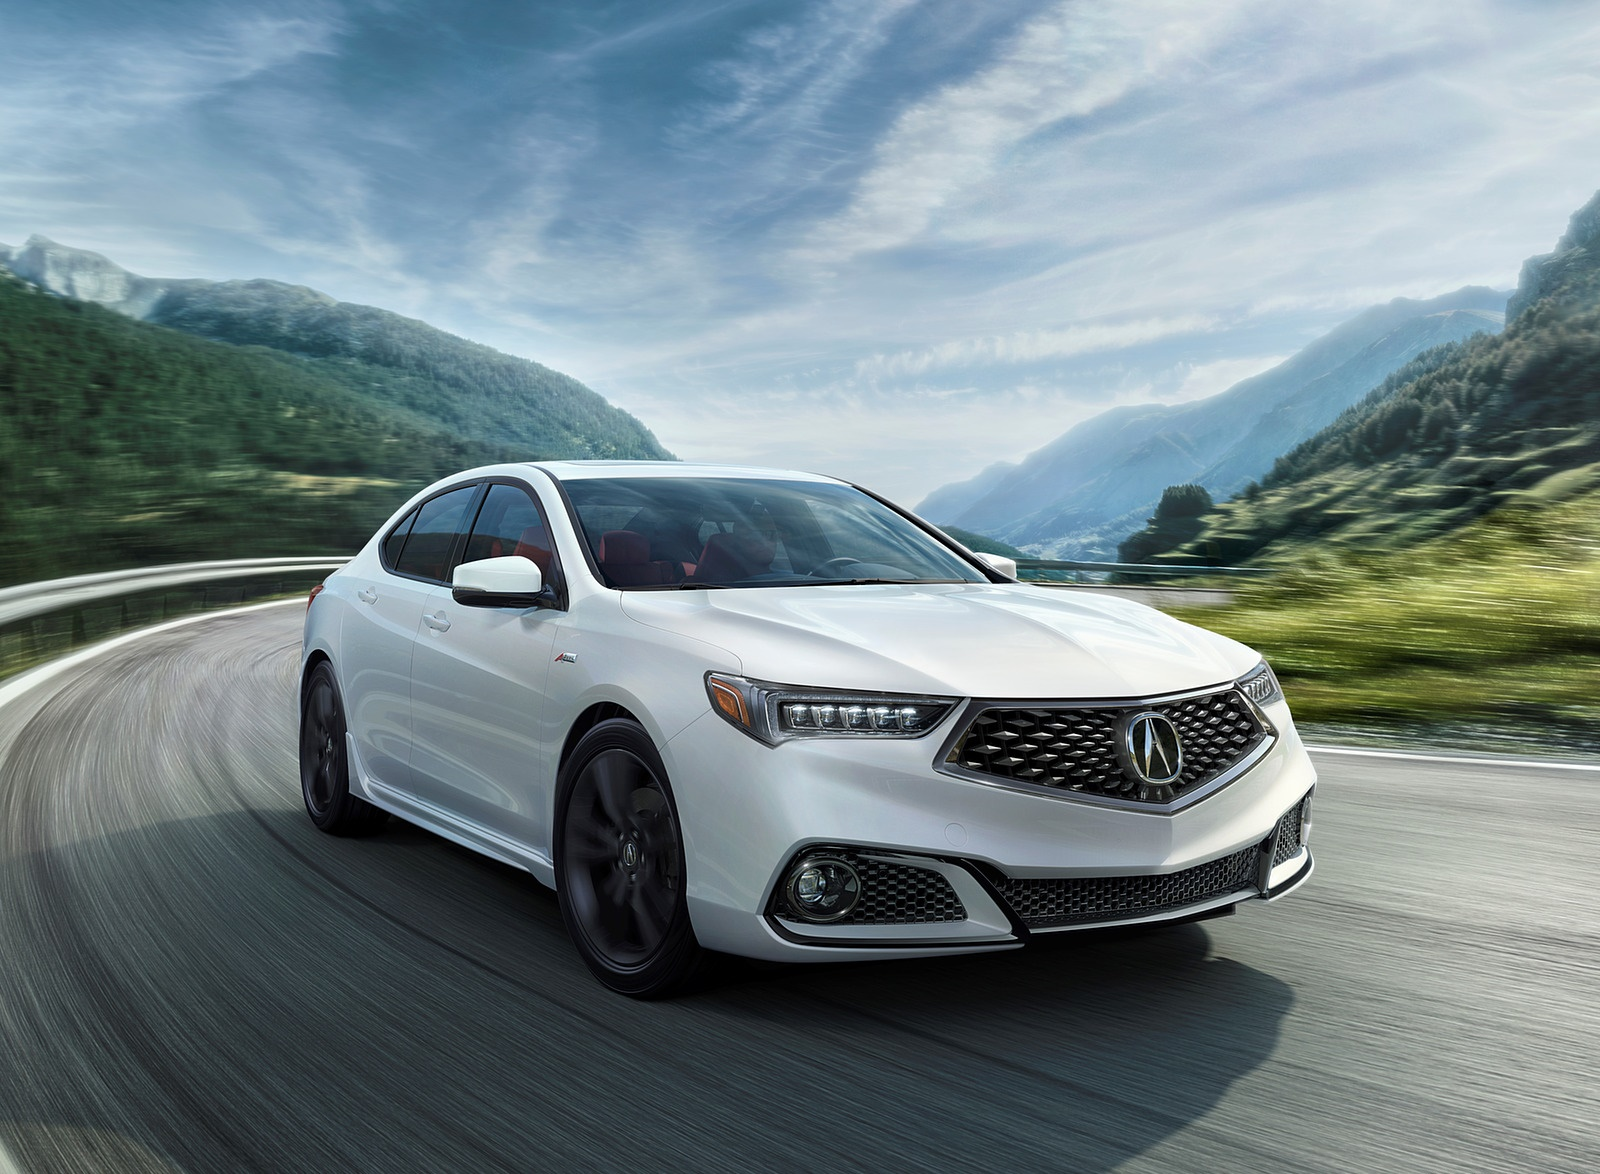 2019 Acura TLX A-Spec SH-AWD Front Three-Quarter Wallpapers (2)